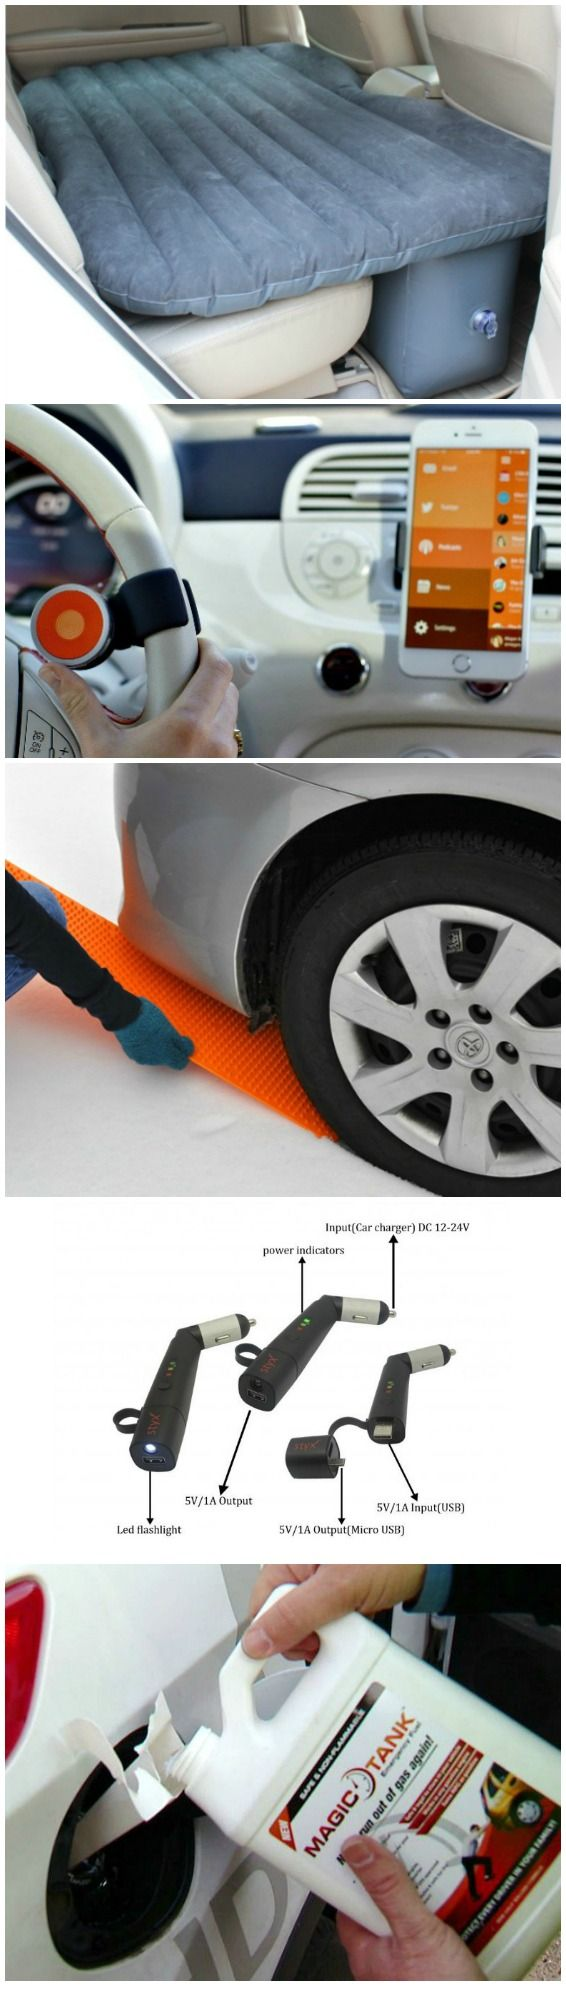 10 Must Have Gadgets For Your Car Getdatgadget Pinterest Cars Subaru Outback Karpet Mobil Comfort Deluxe 12mm Mat Full Set A List Of The Best That Any Motorhead Would Love To Add Their